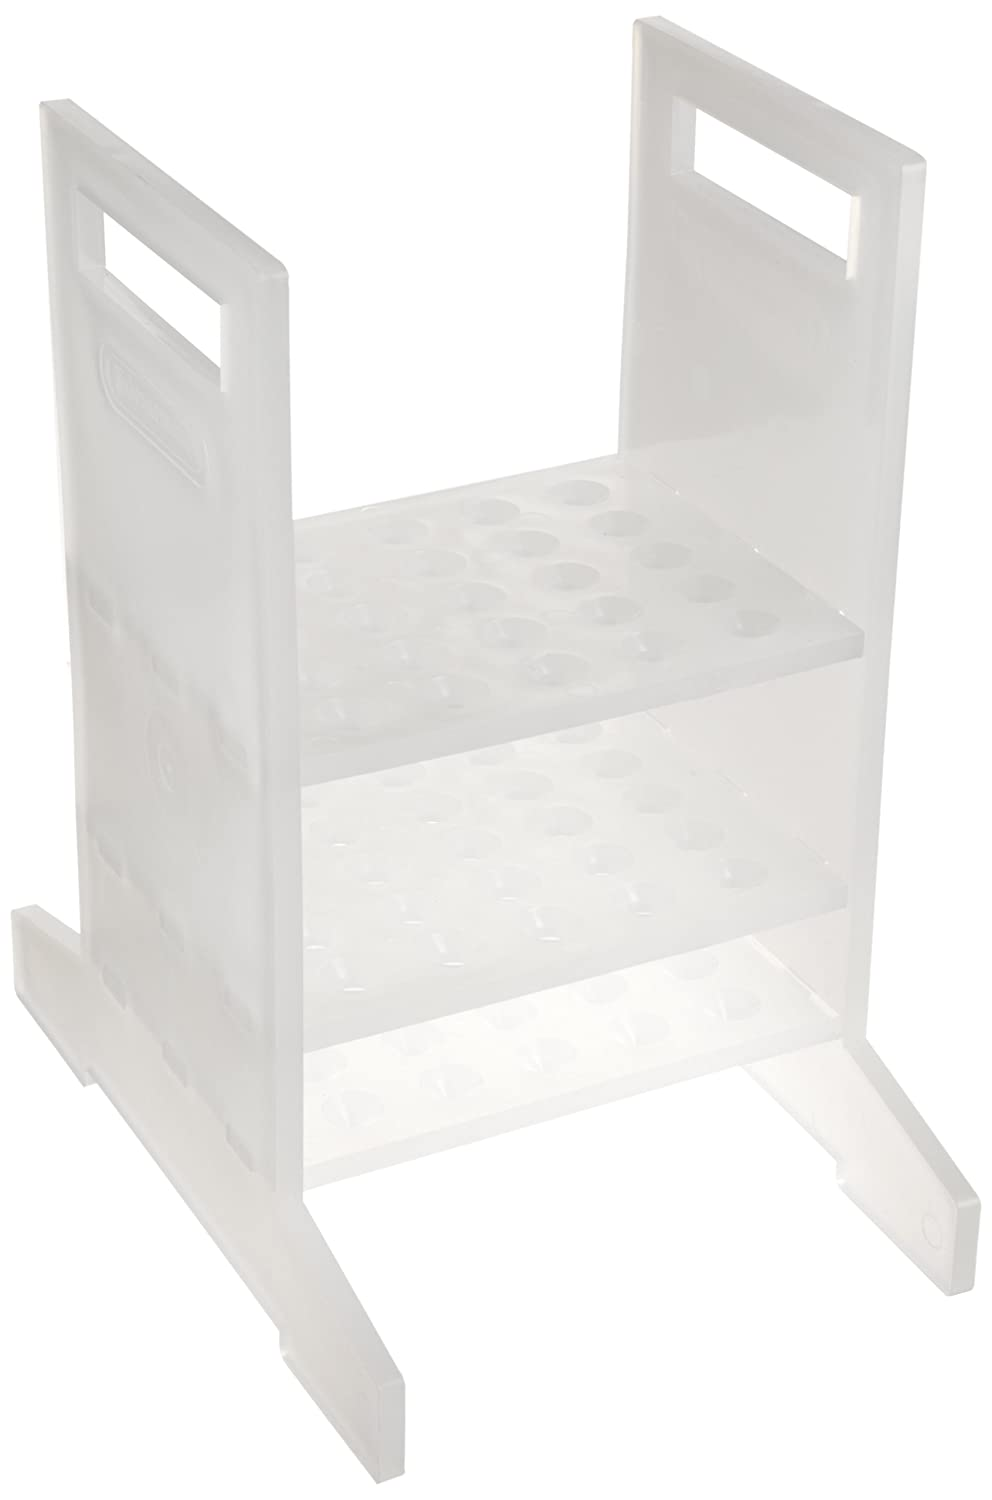 5⁷//₈ x 8/³//₈ x 9⁷//₈ in Polypropylene Bel-Art Thermometer Rack; 25 Places F18981-0001